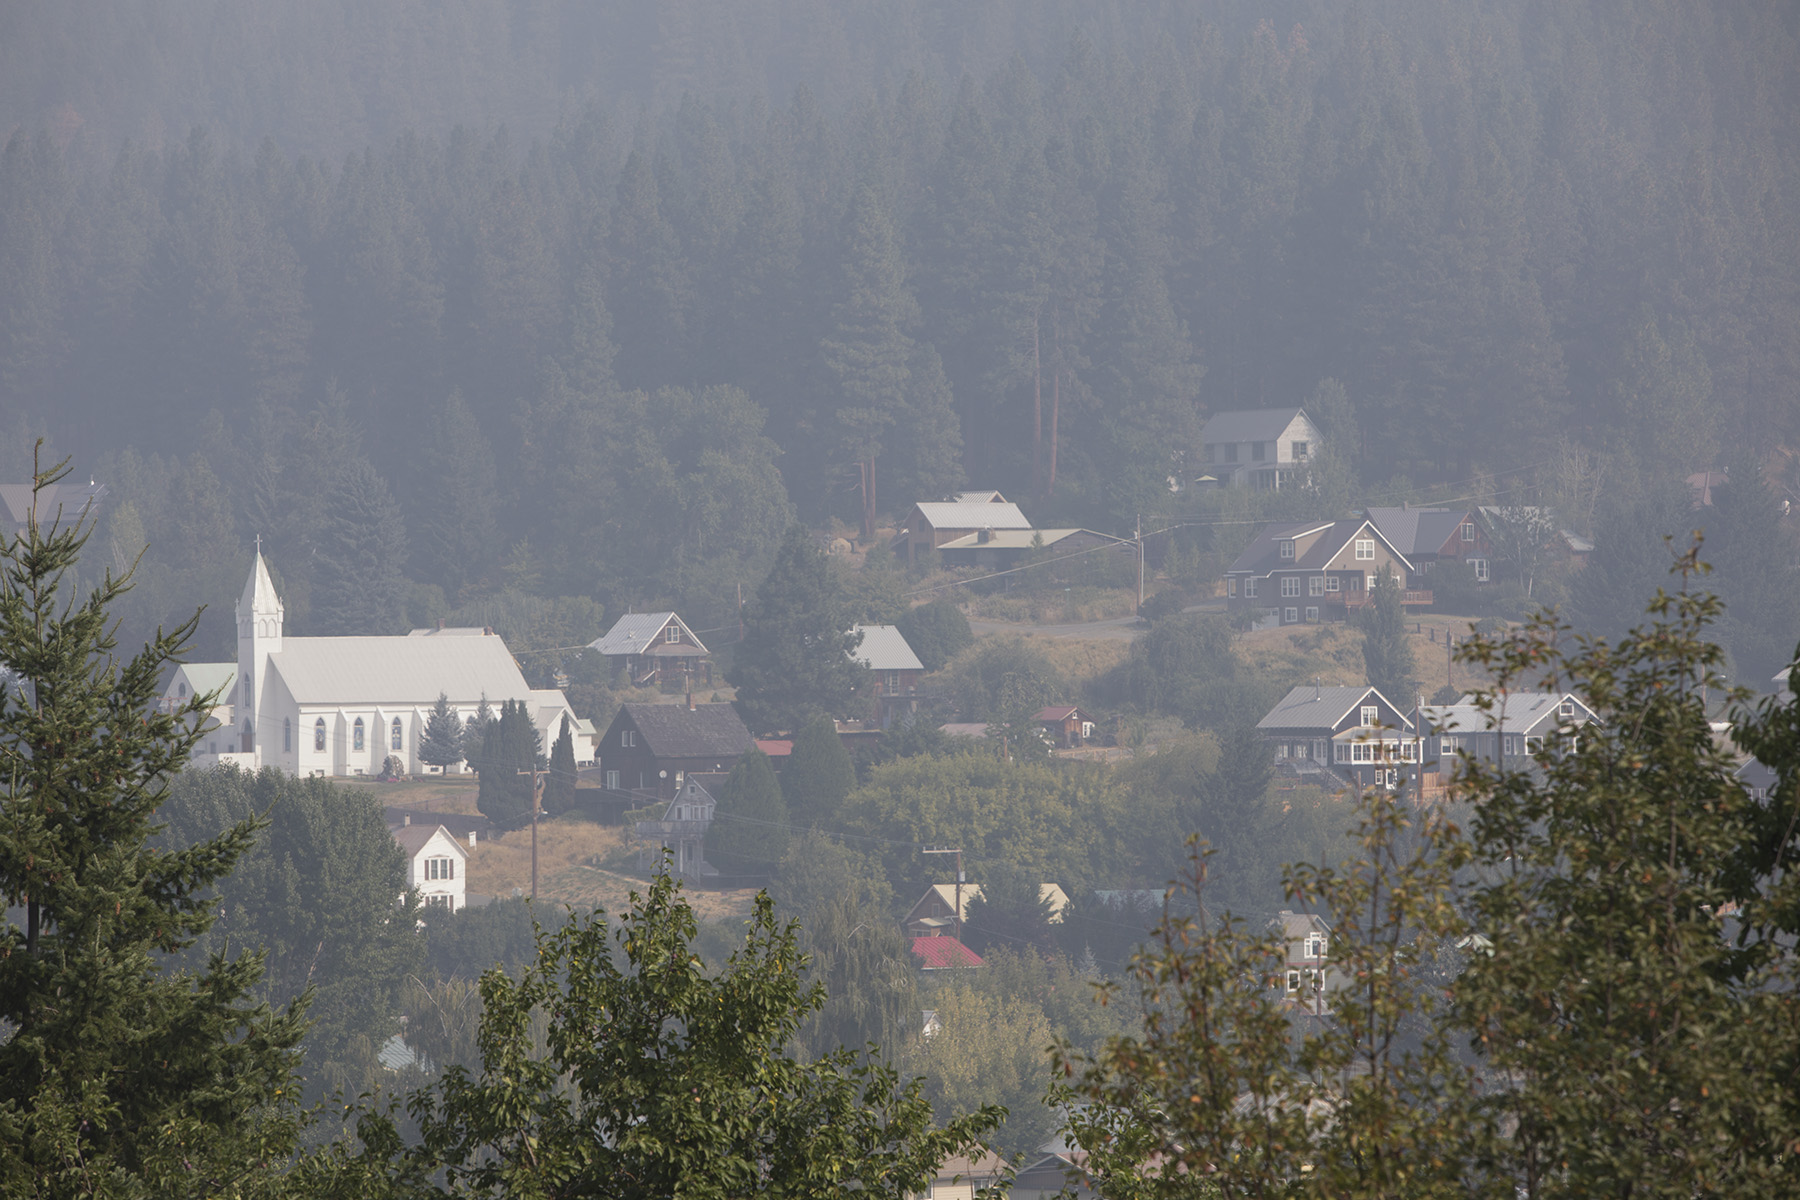 Smoke from the Jolly Mountain fire fills the town of Roslyn. Photo © John Marshall